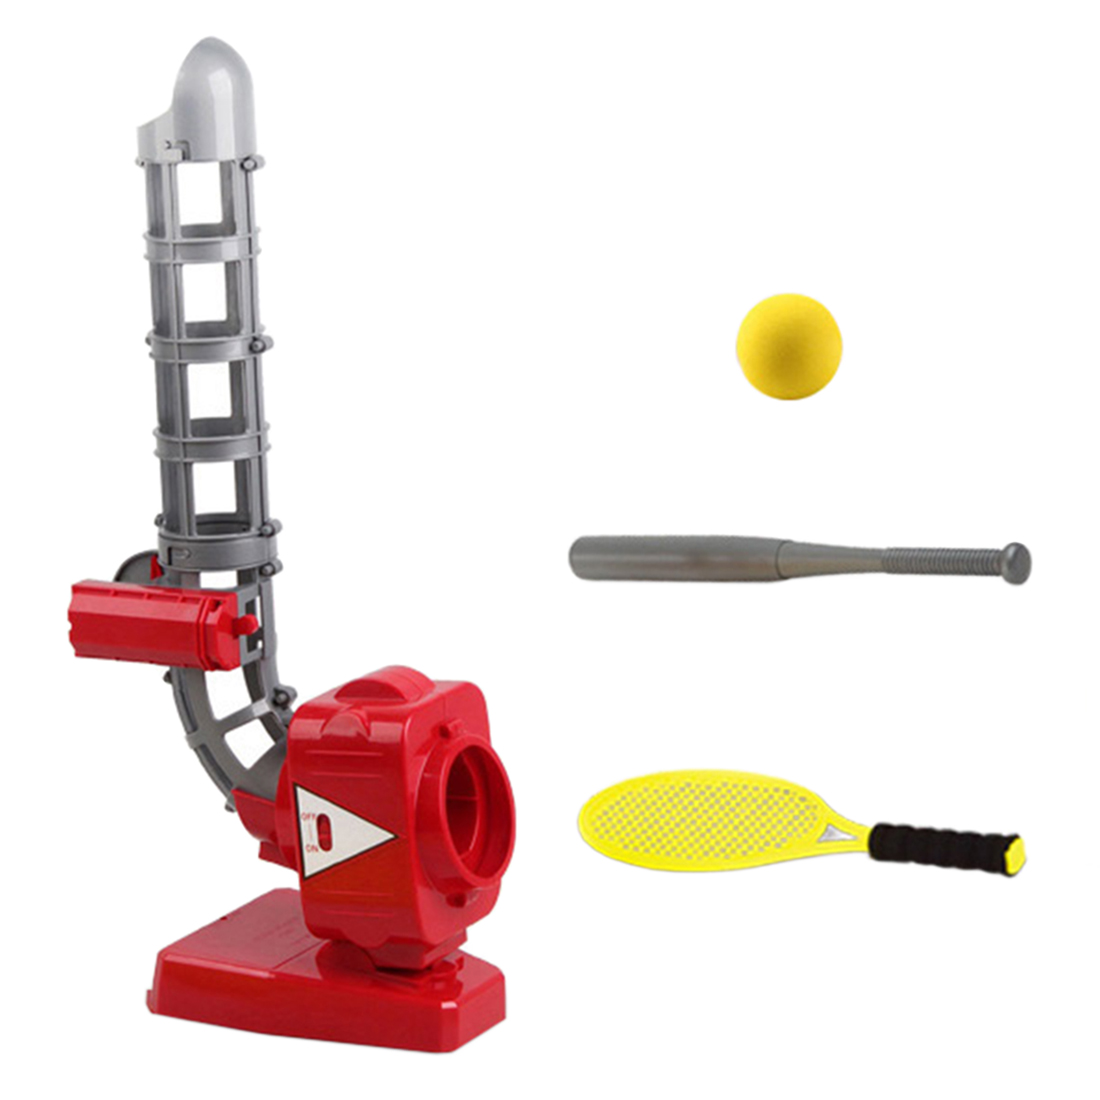 QC033-17 2-In-1 Children Baseball Automatic Pitching Machine Indoor Outdoor Toys Parent-Child Family Fun For Kids - Red Yellow